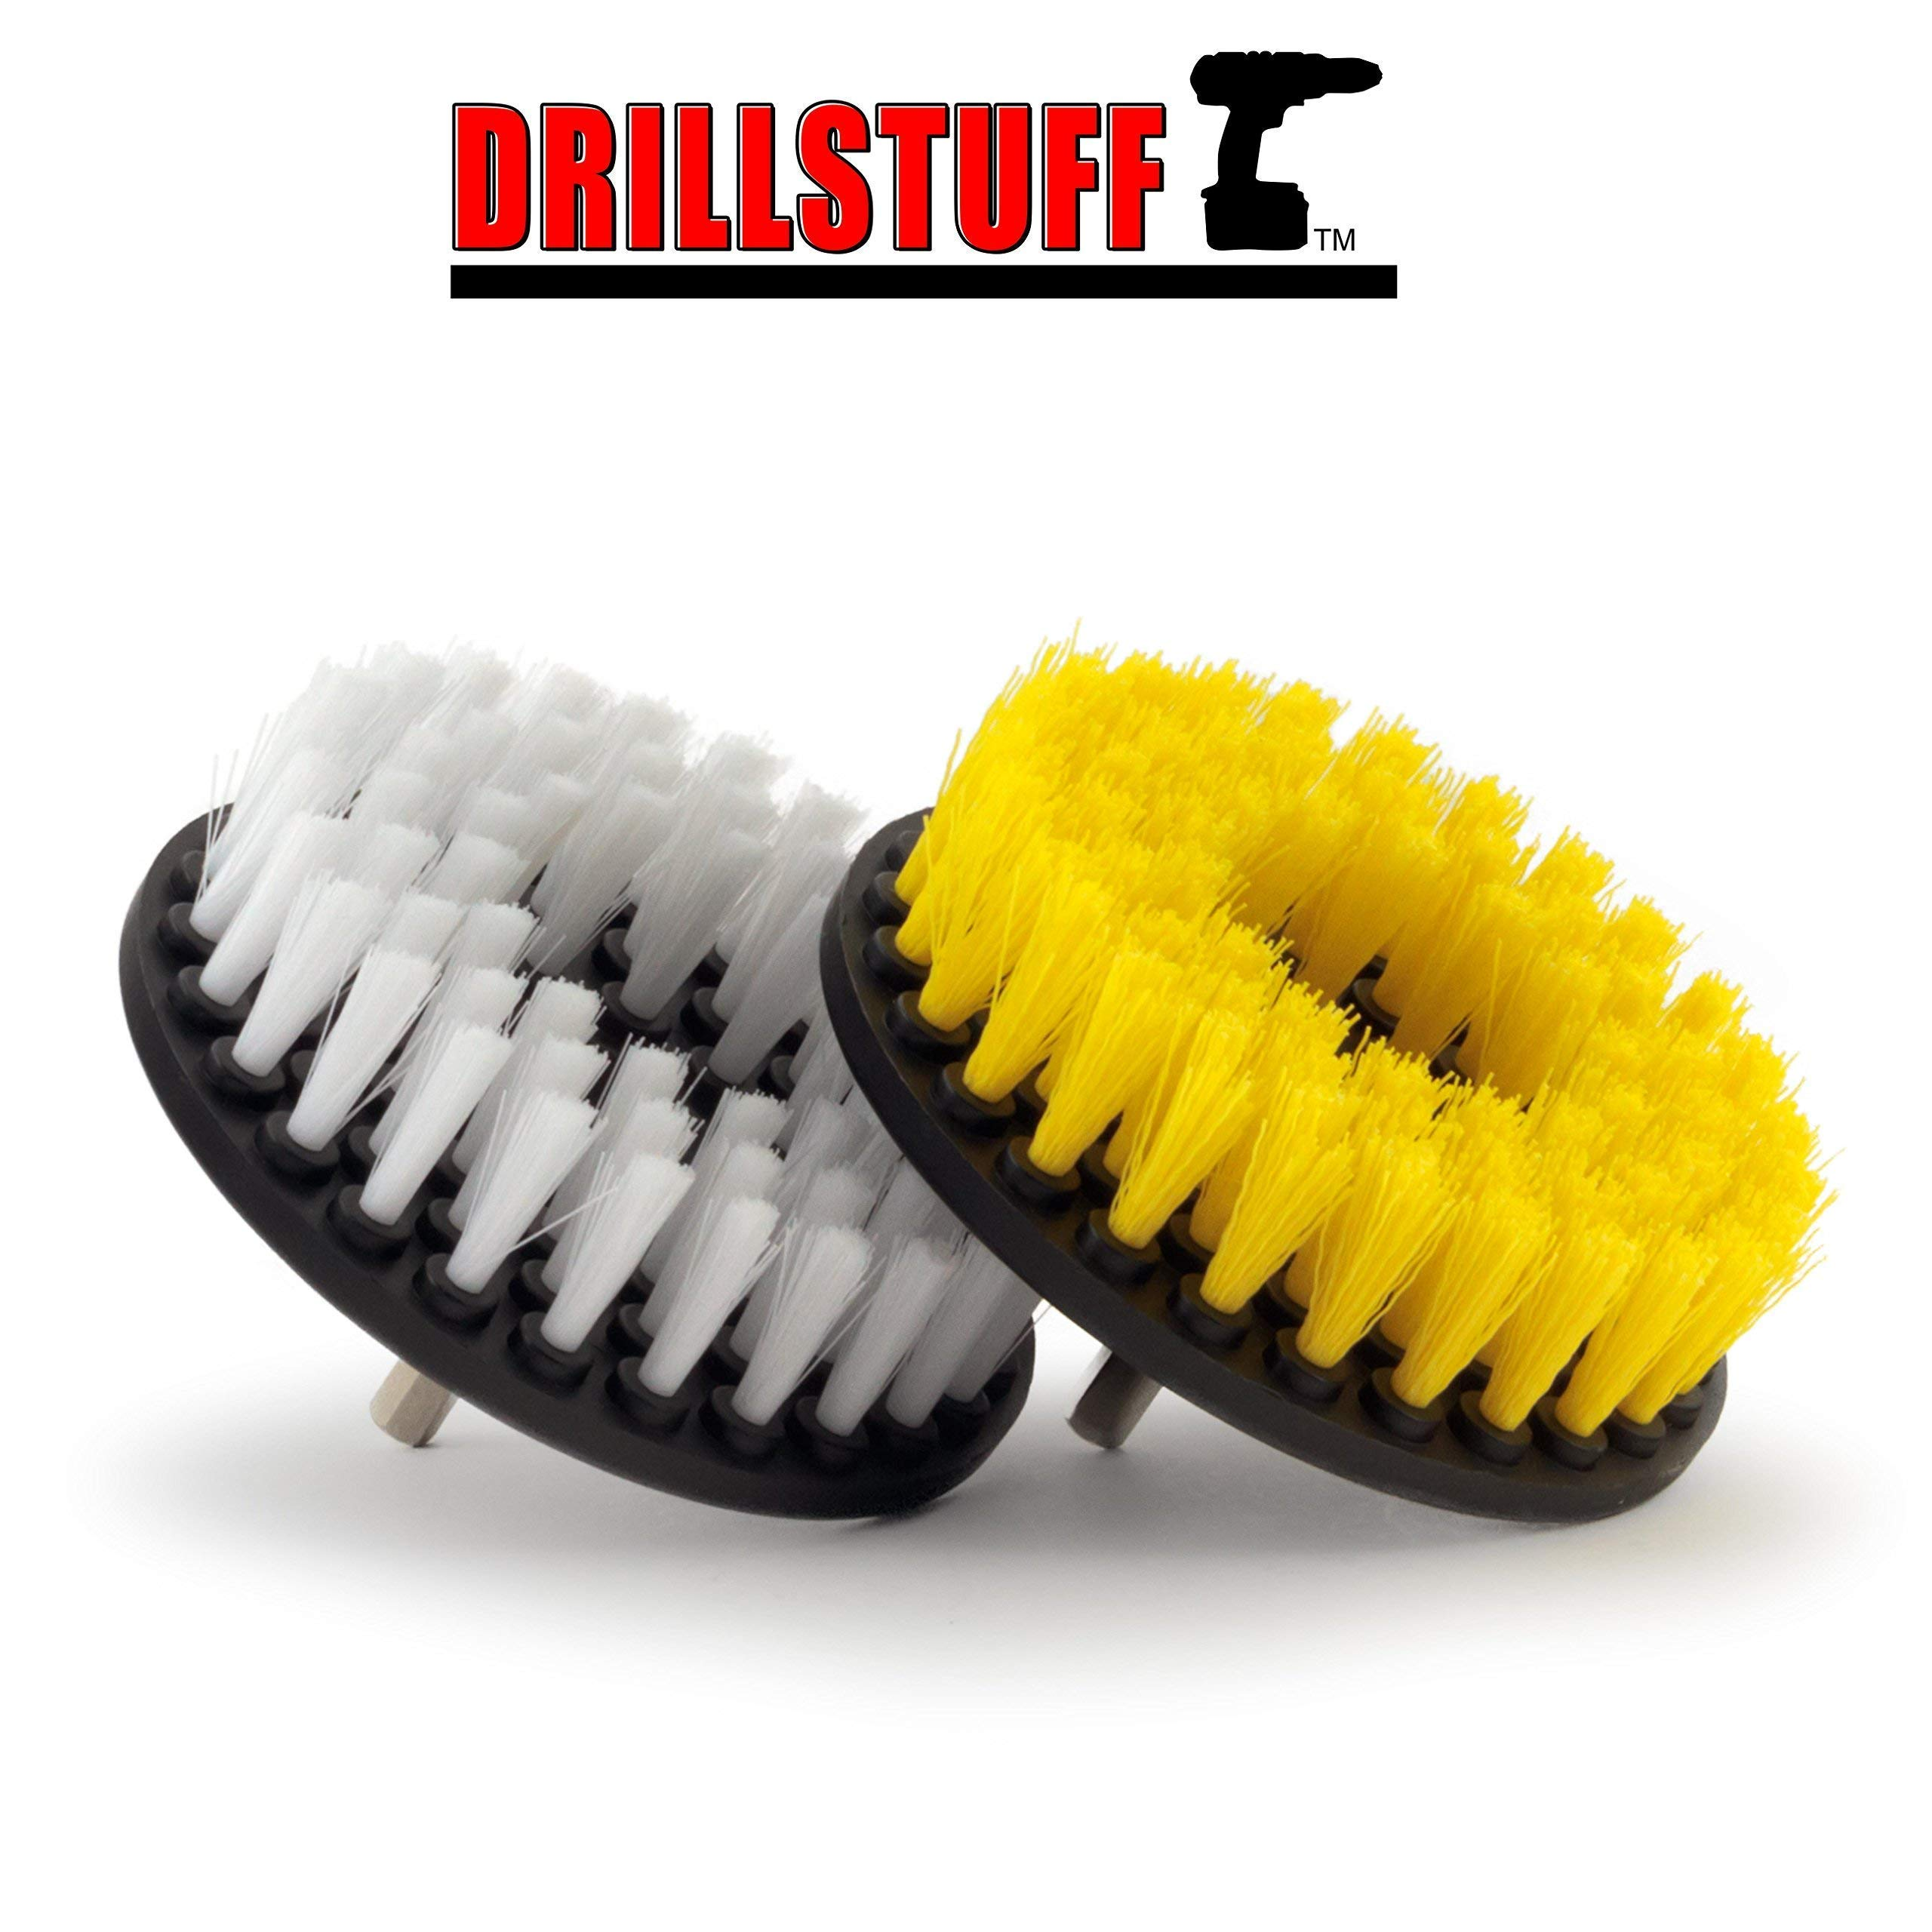 2 Piece, Soft & Medium Drill Brush- Power Scrubbing Brush Drill Attachment for Cleaning Showers, Tubs, Bathrooms, Tile, Grout, Carpet, Tires, Boats by Drillstuff